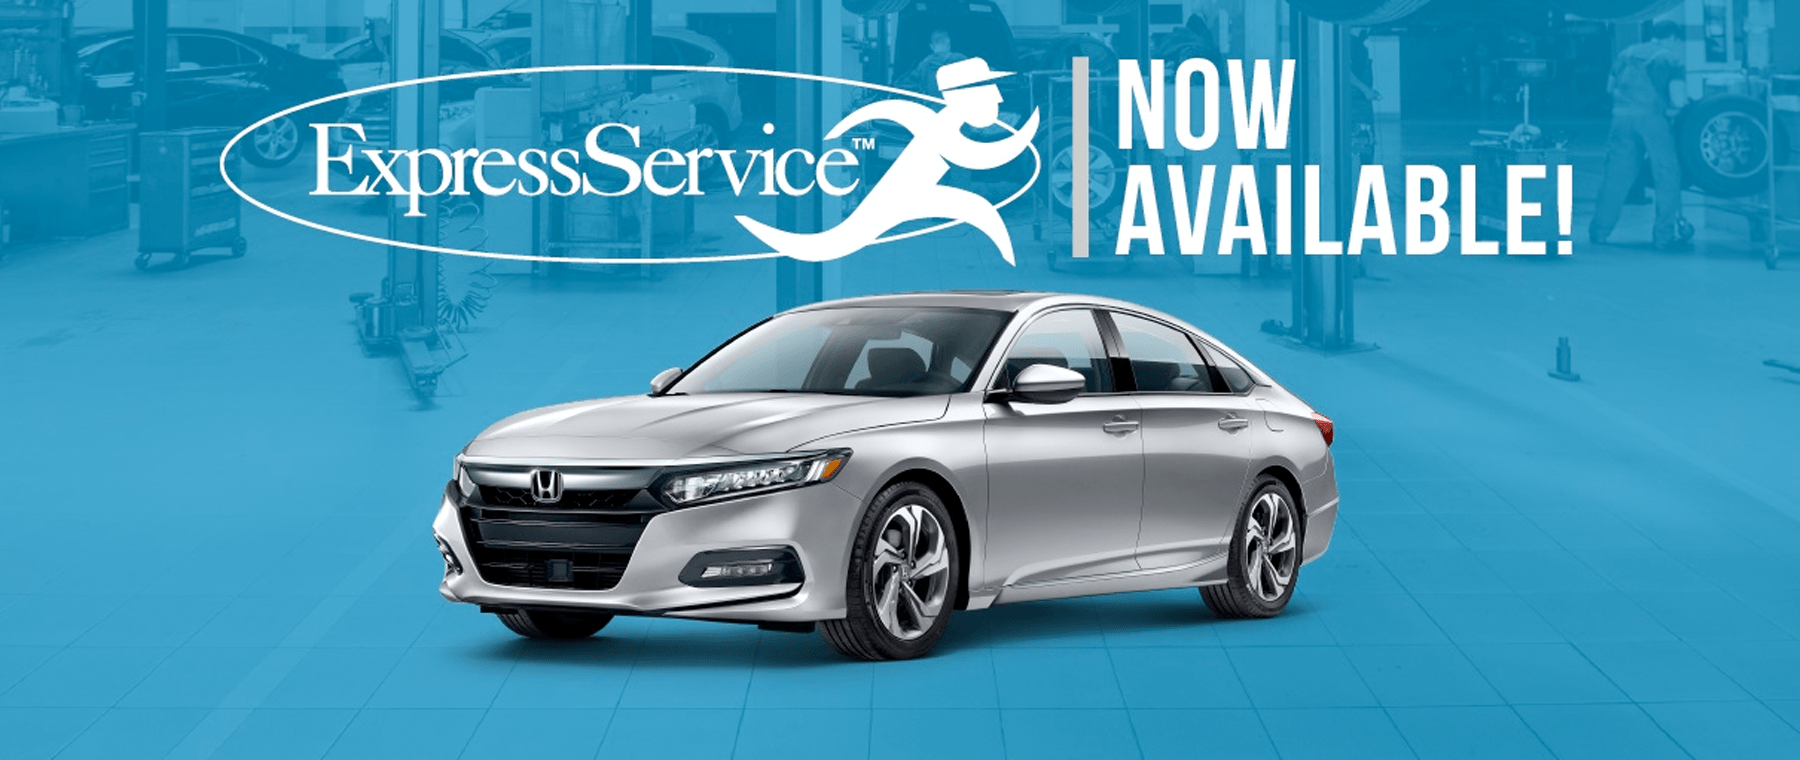 Express Service banner with silver Honda highlighted